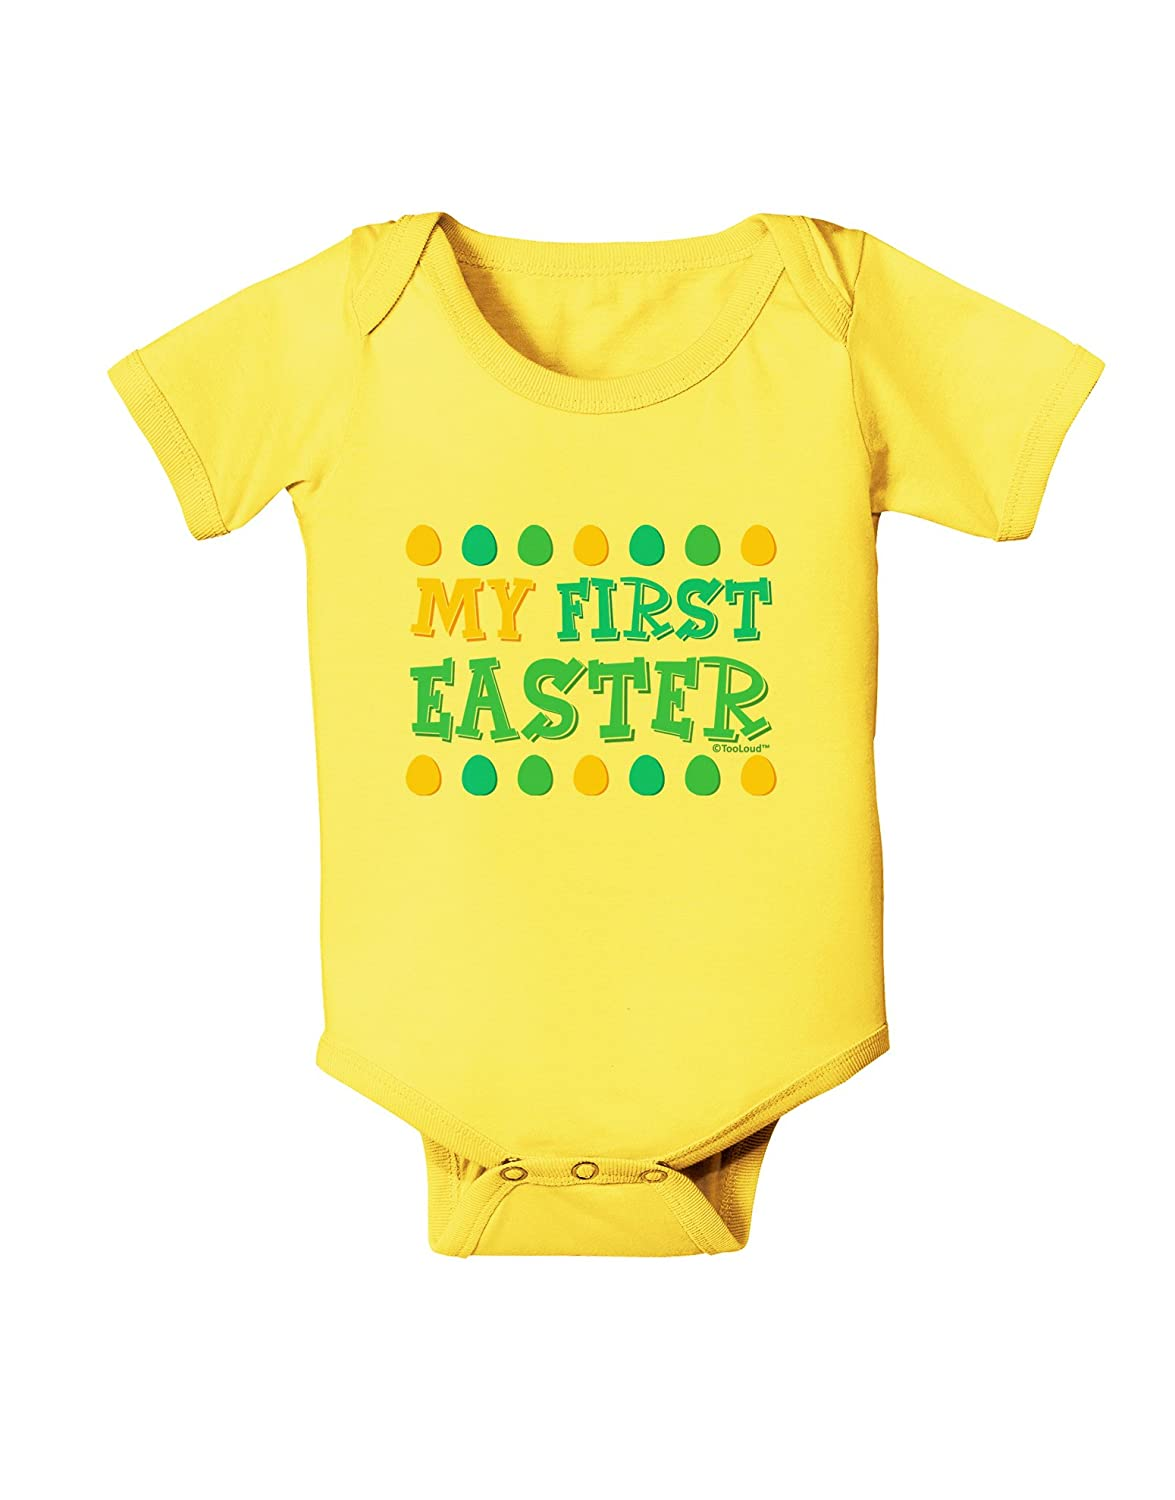 Yellow Blue Green Eggs Baby Romper Bodysuit TooLoud My First Easter